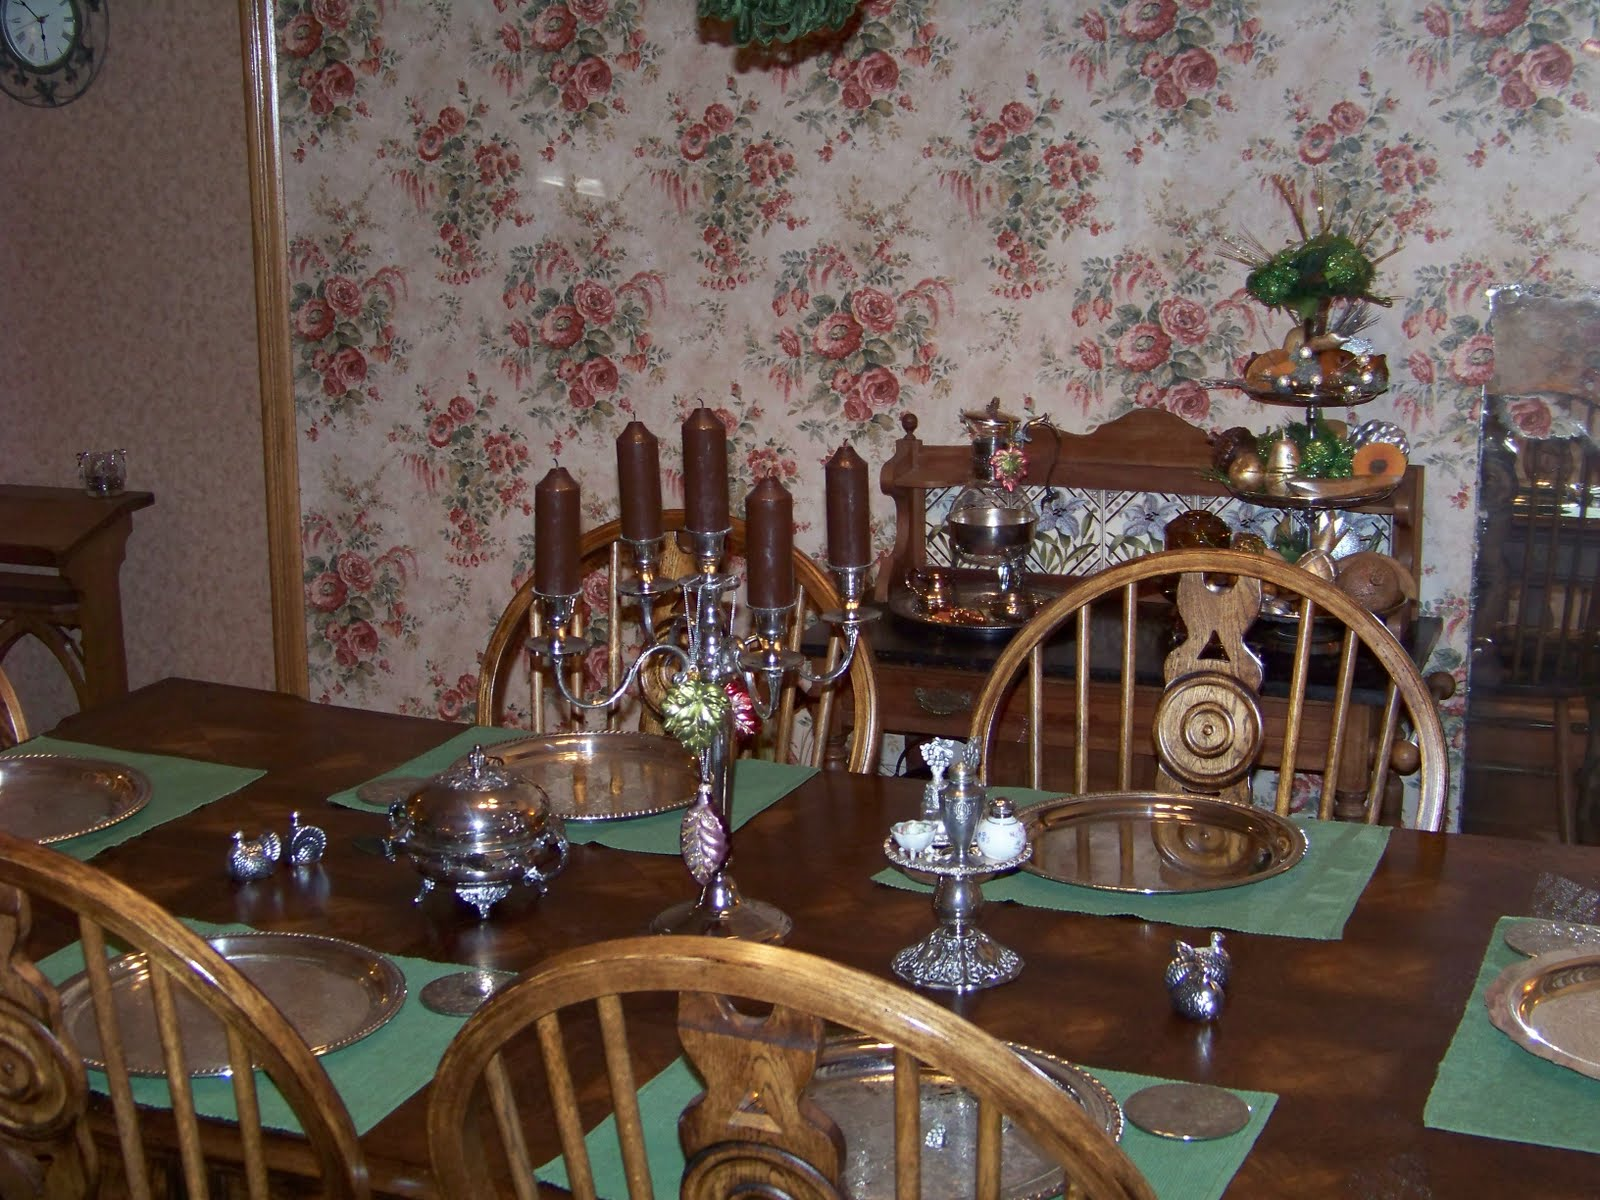 We eat in this room every day. So I just leave the table set like this -3.bp.blogspot.com